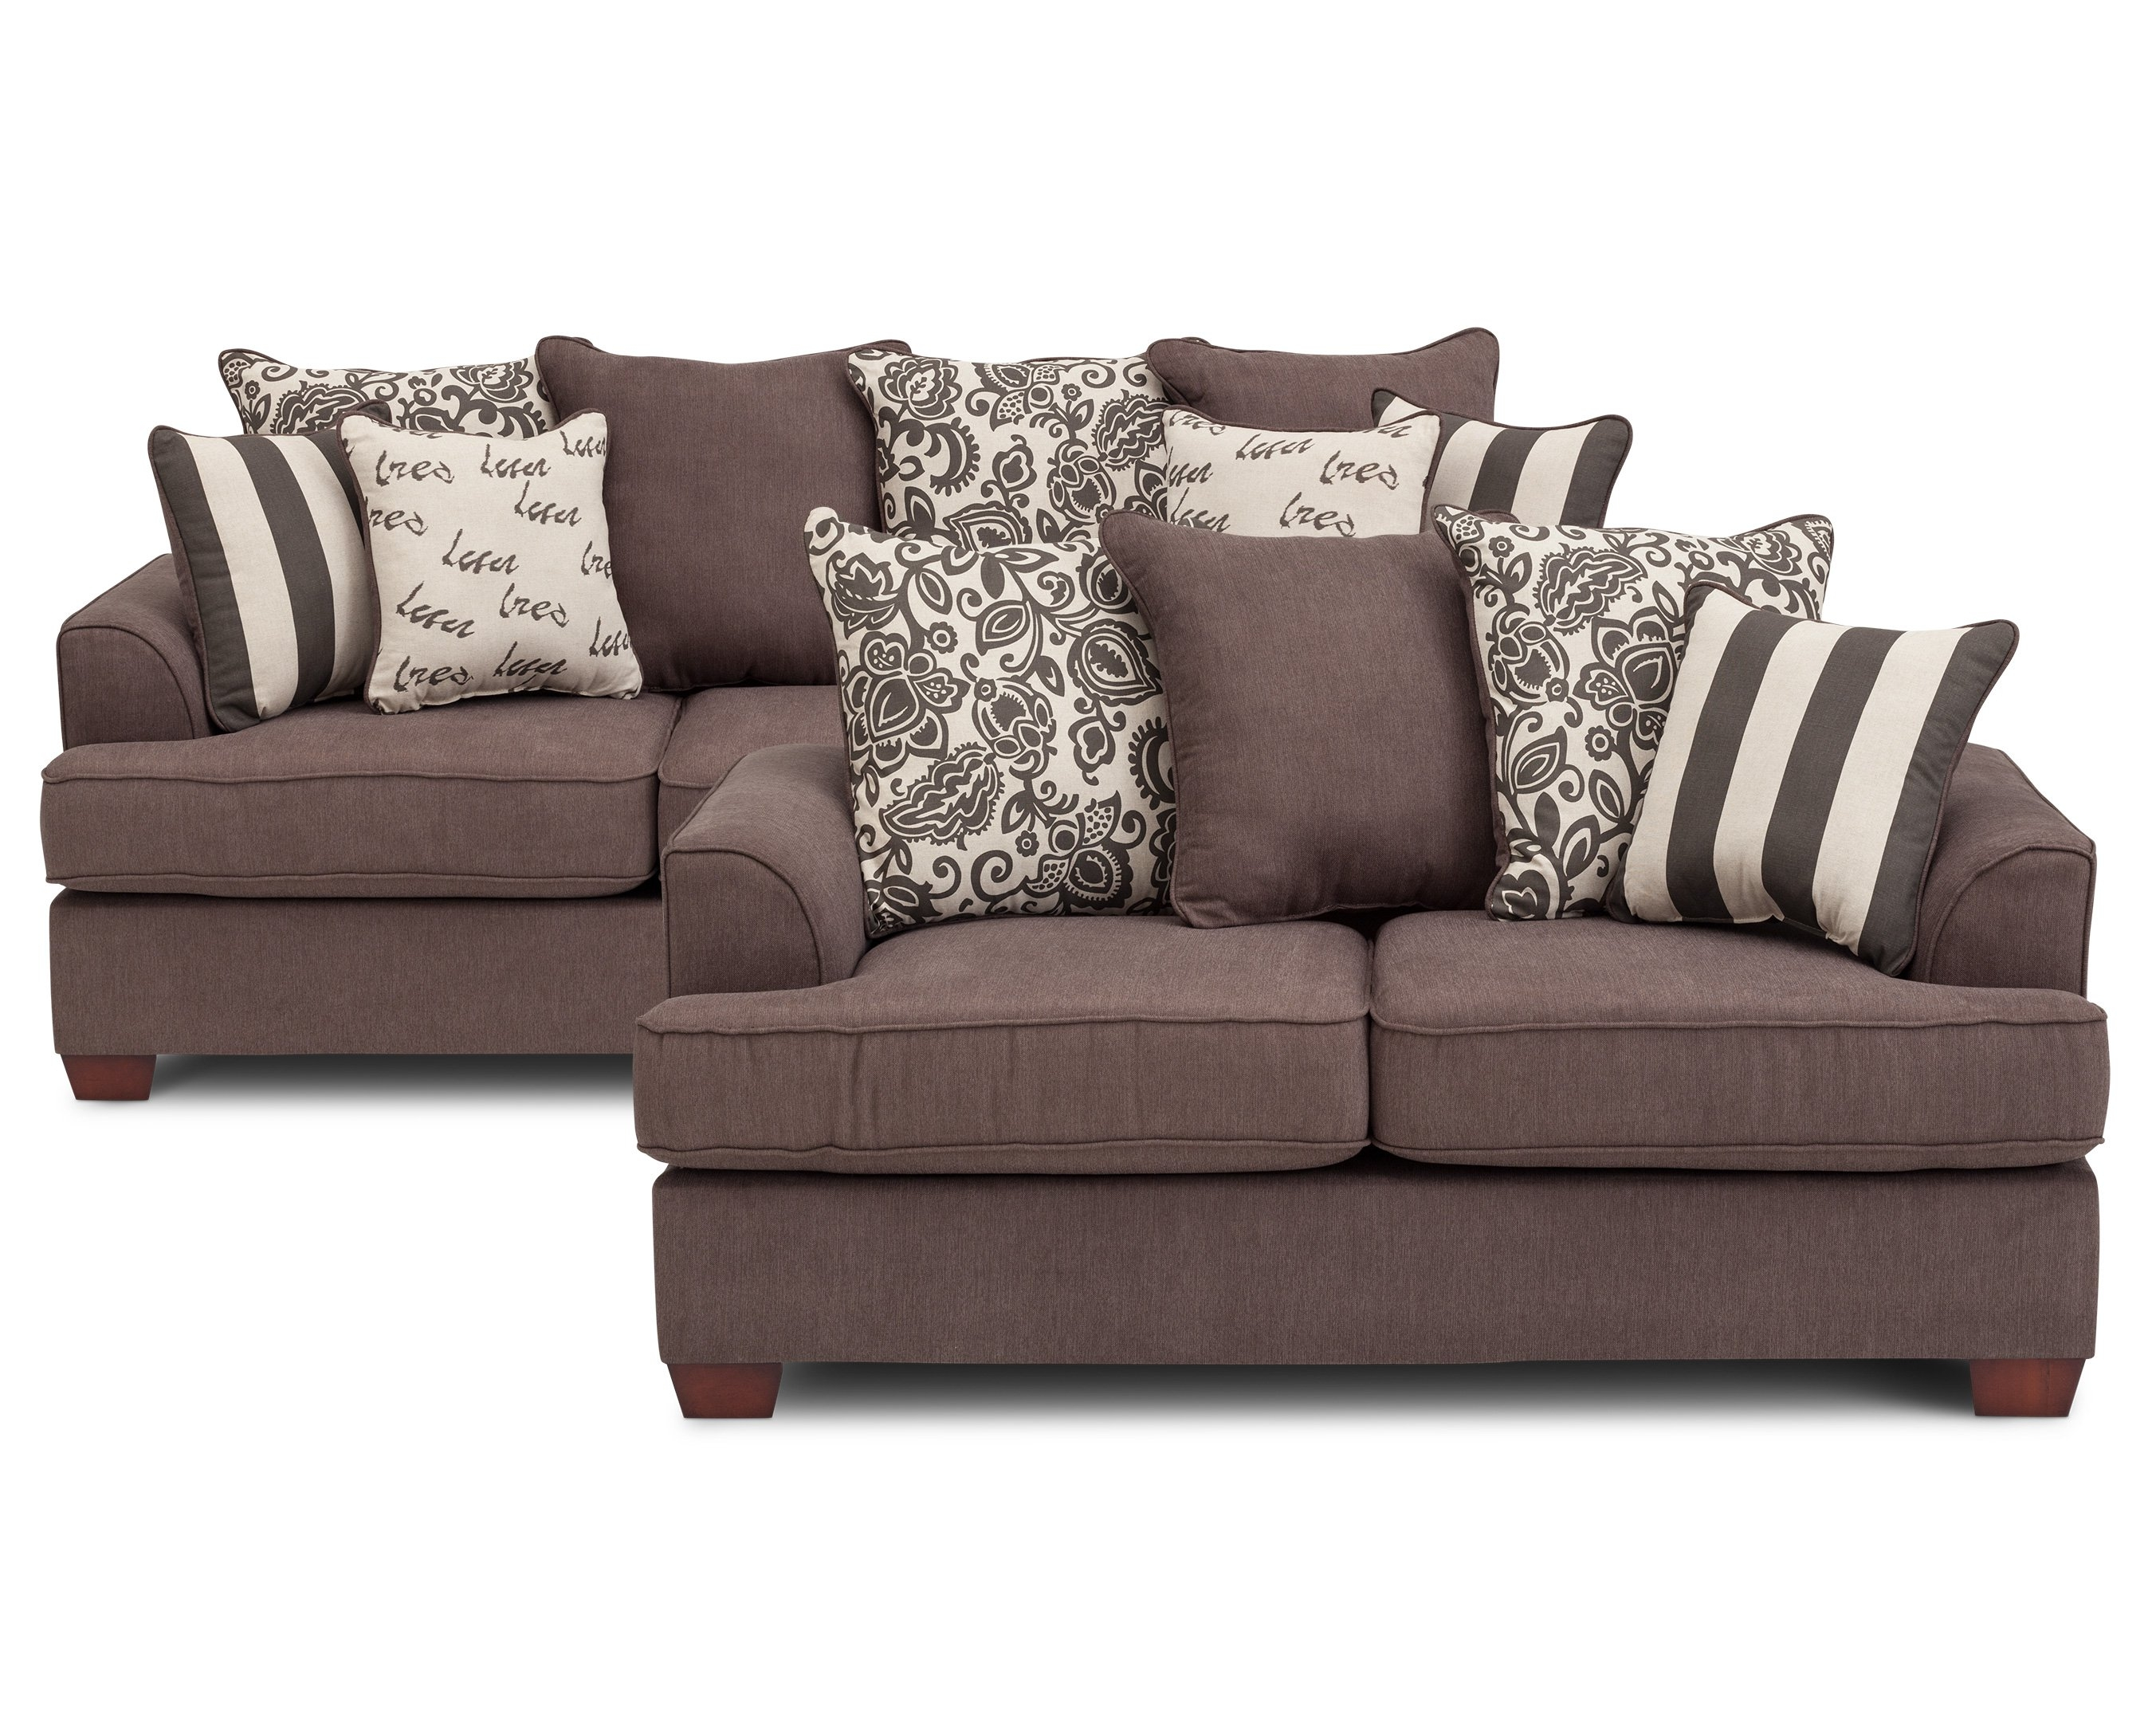 Aberdeen Sofa Group Furniture Row Regarding Sofa Mart Chairs (Image 5 of 15)